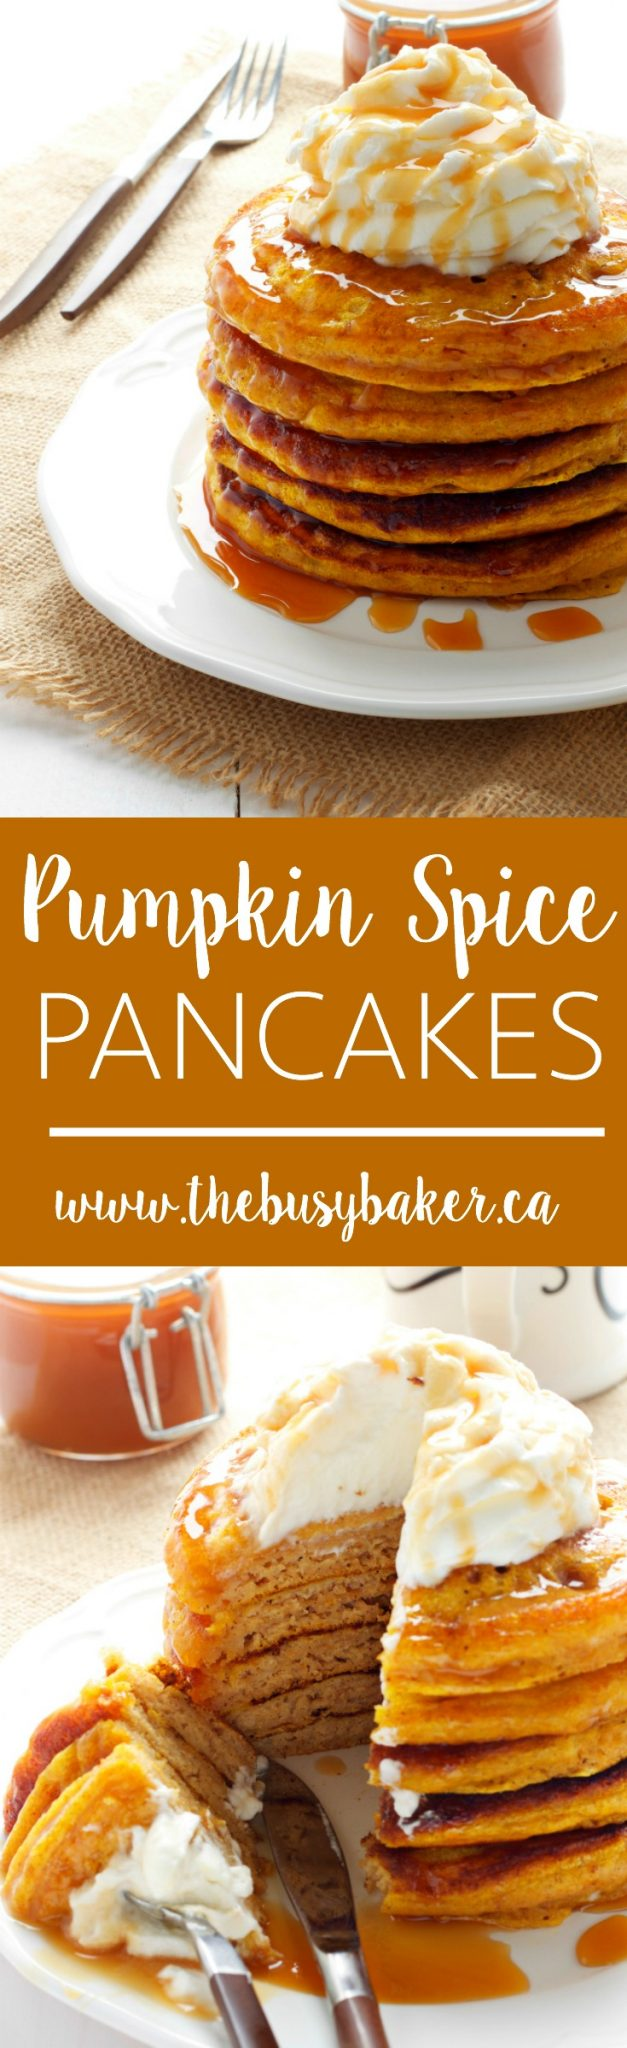 These Pumpkin Spice Pancakes are a delicious fall breakfast! Made with fresh buttermilk, pumpkin and topped with caramel and whipped cream! Recipe from thebusybaker.ca! via @busybakerblog